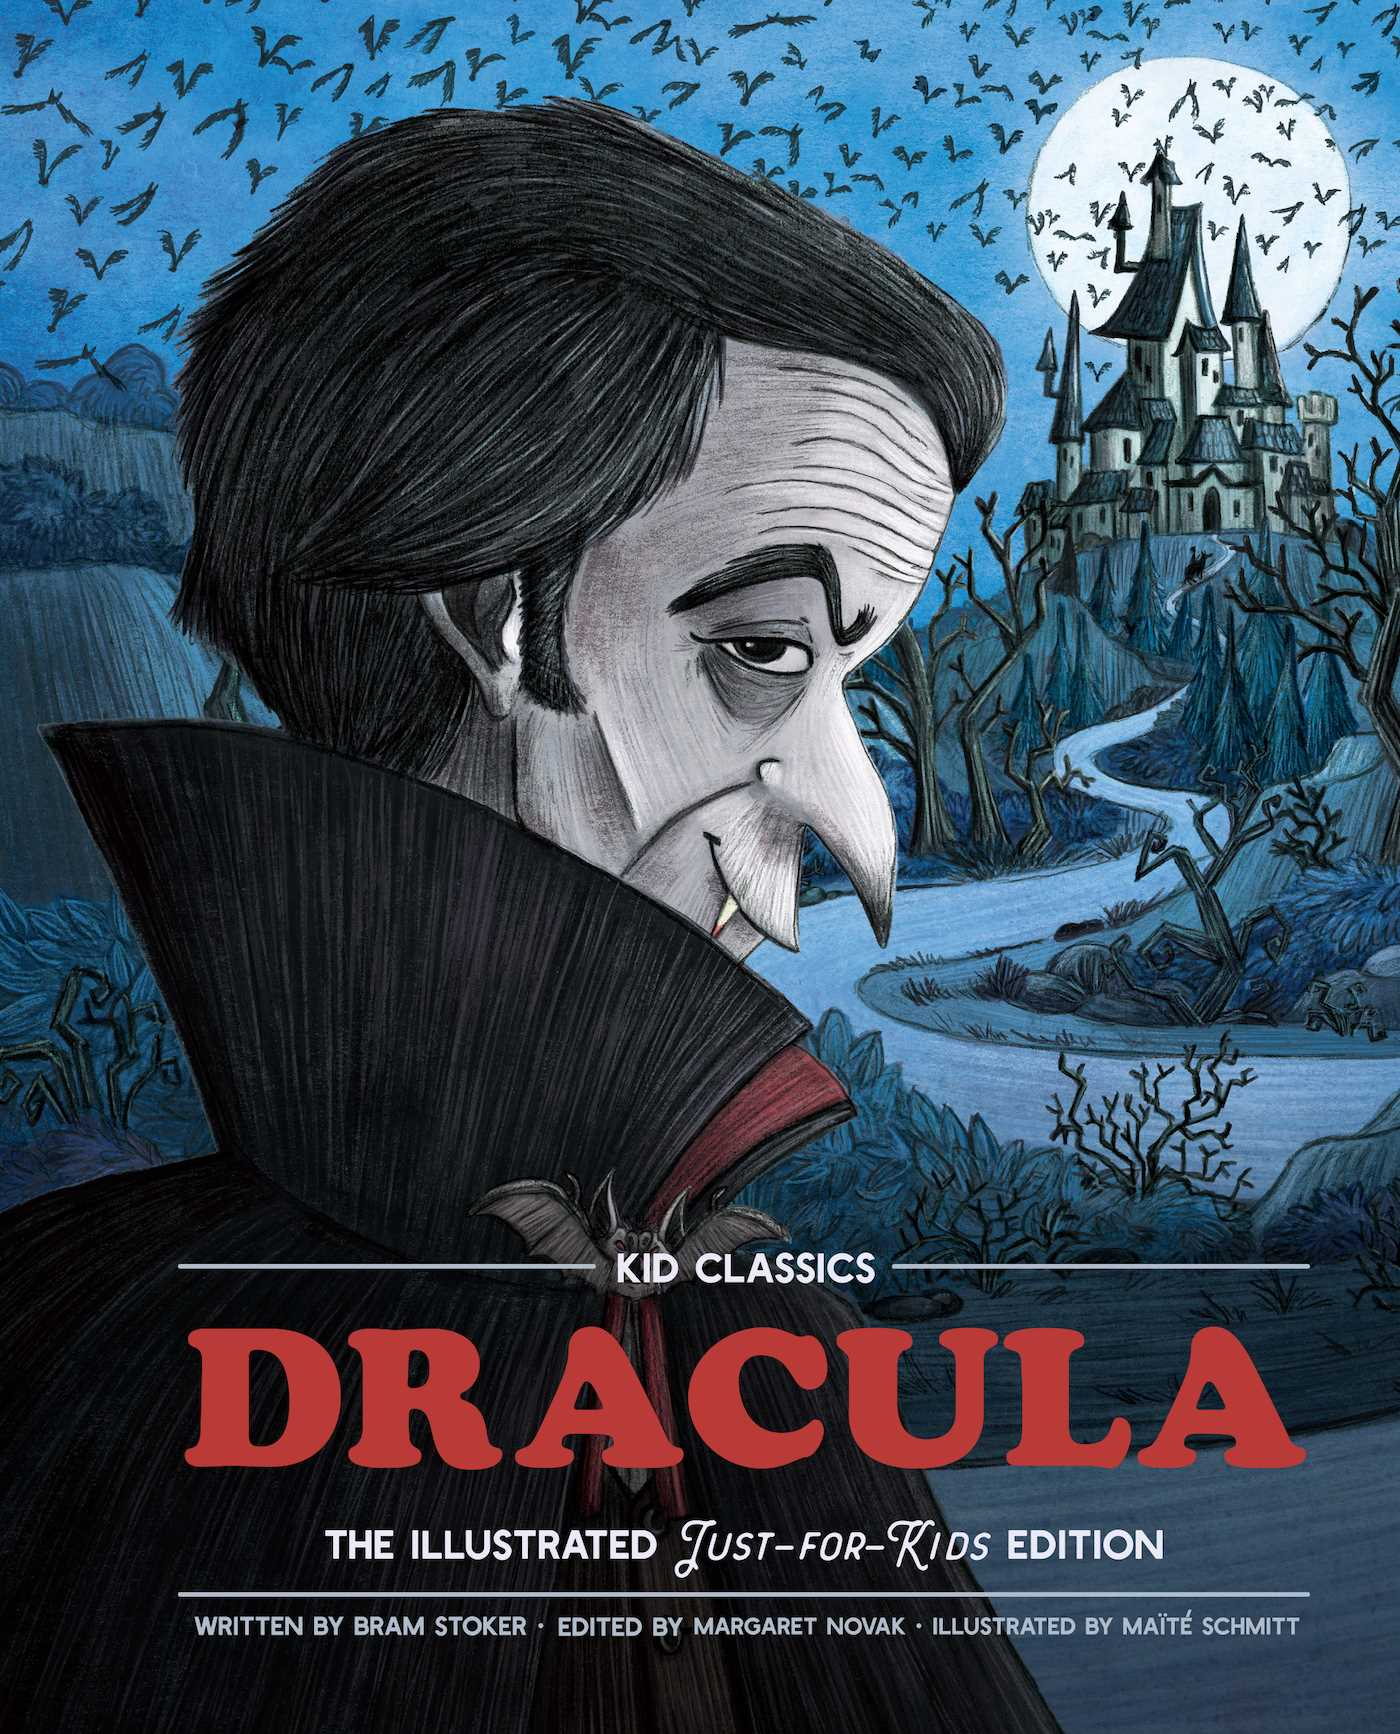 Dracula - Kid Classics: The Classic Edition Reimagined Just-for-Kids! (Illustrated Abridged for Grades 4 – 7) (Kid Classic #2)